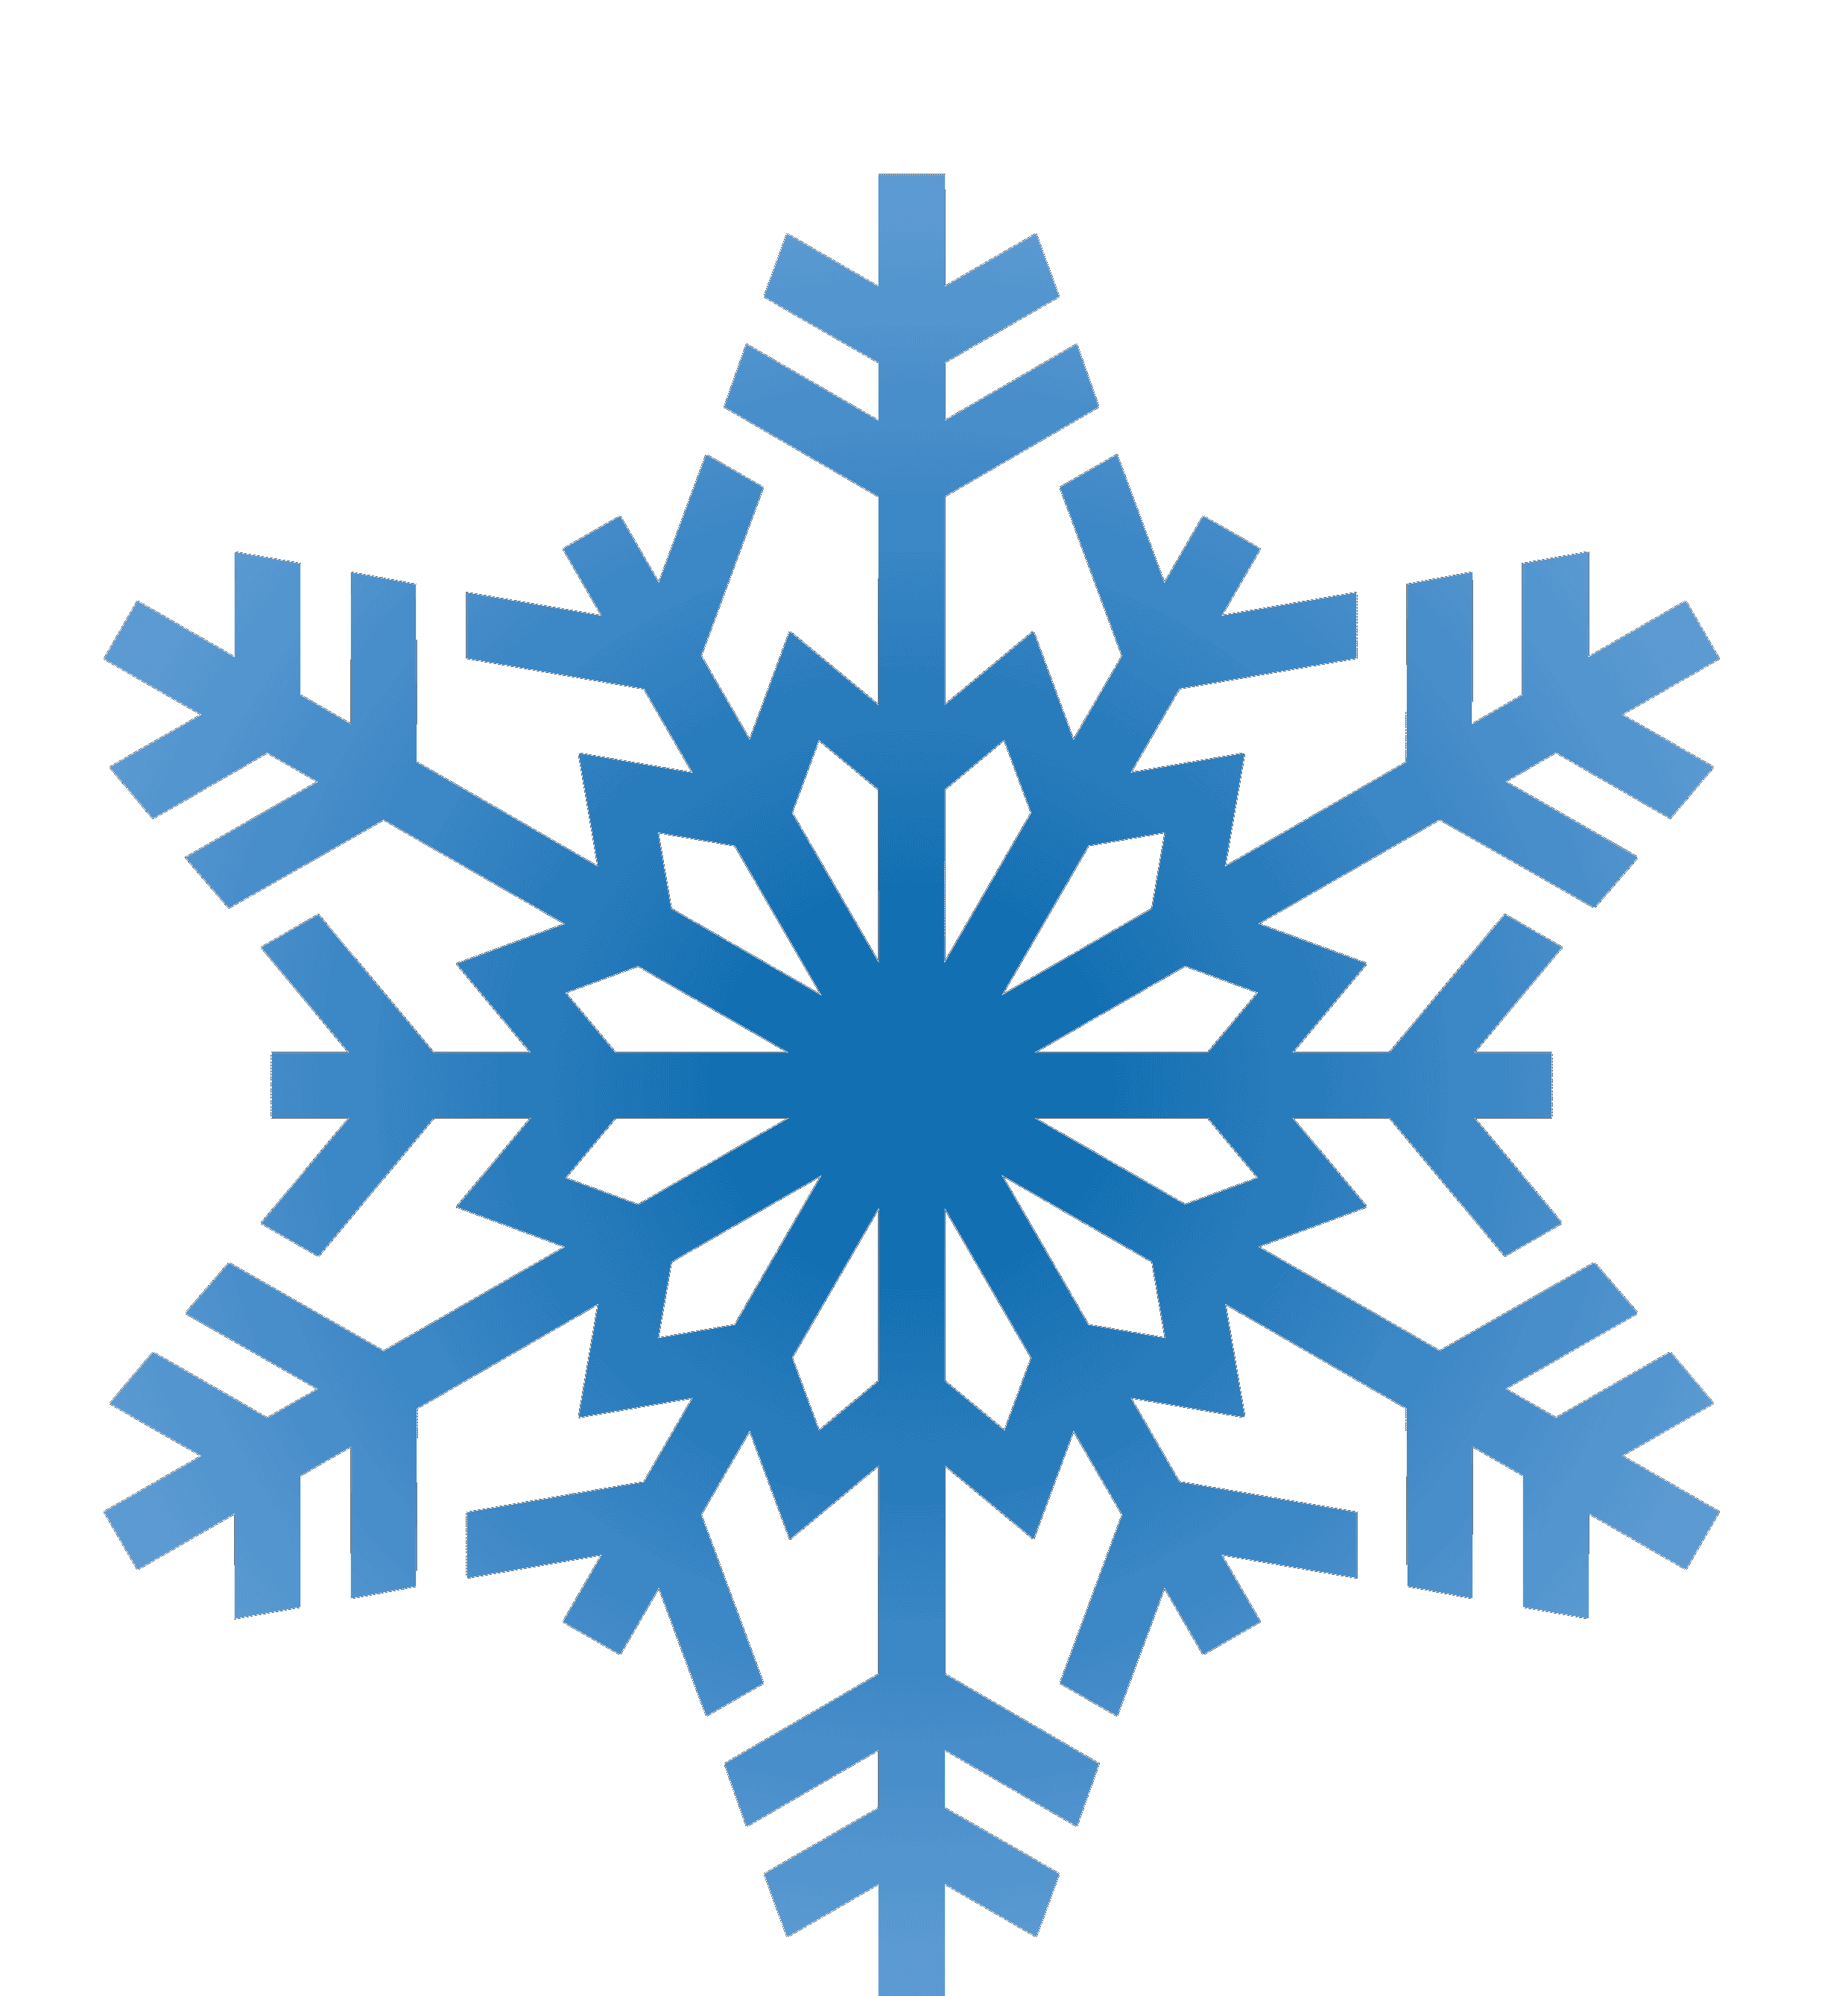 Snowflake Logo Wallpaper